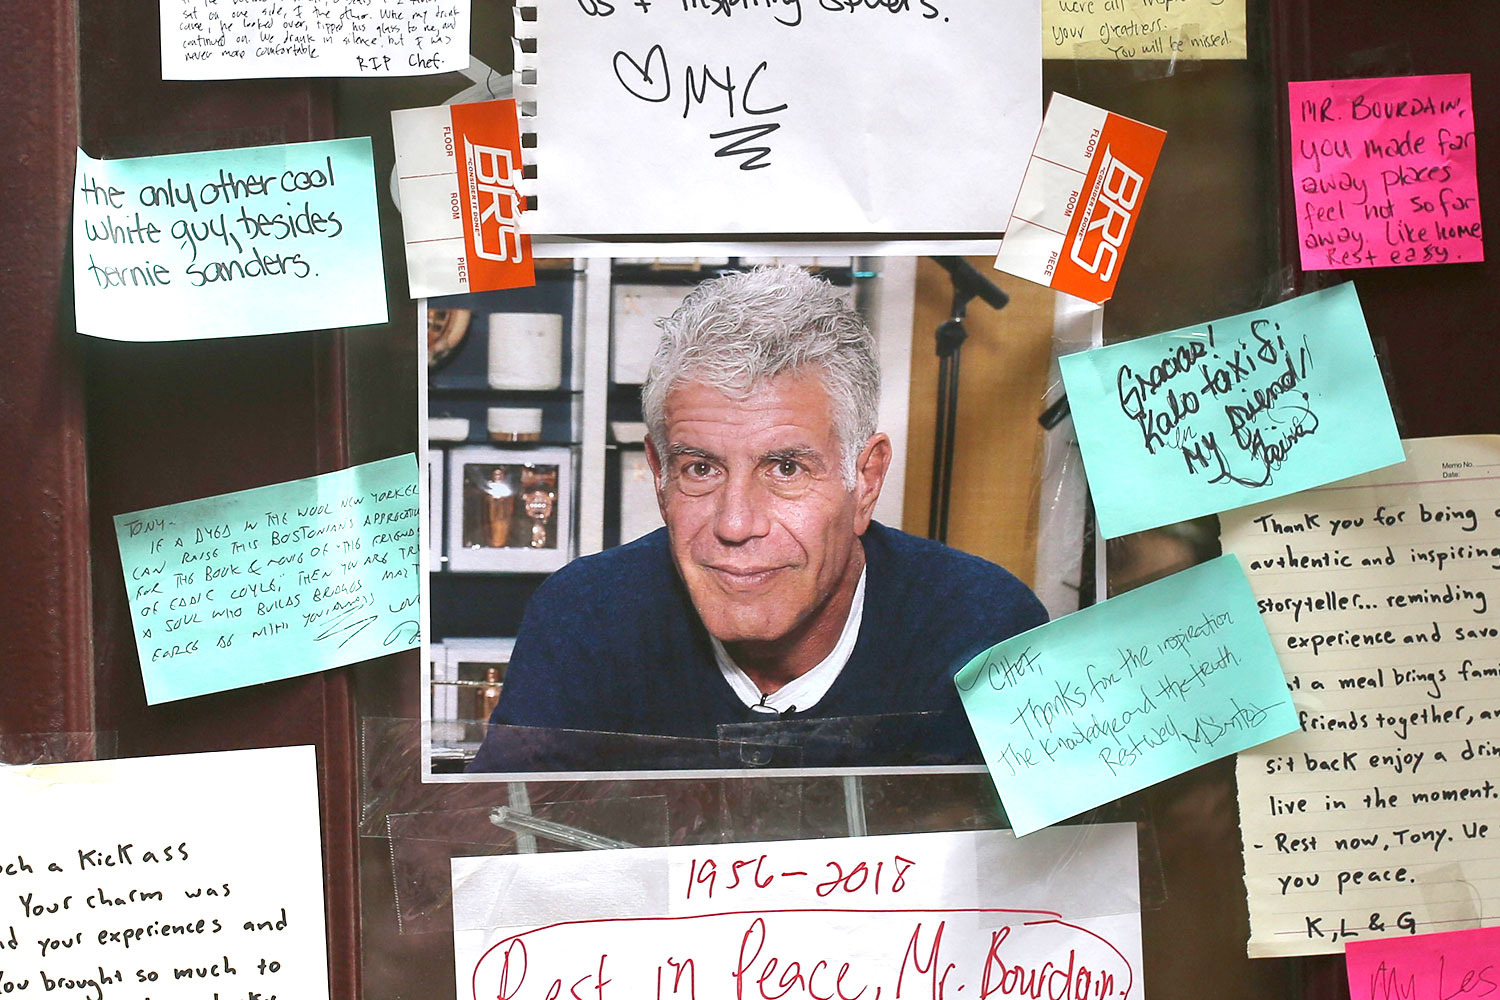 Bourdain's posthumous 'Irreverent travel' guide to be published